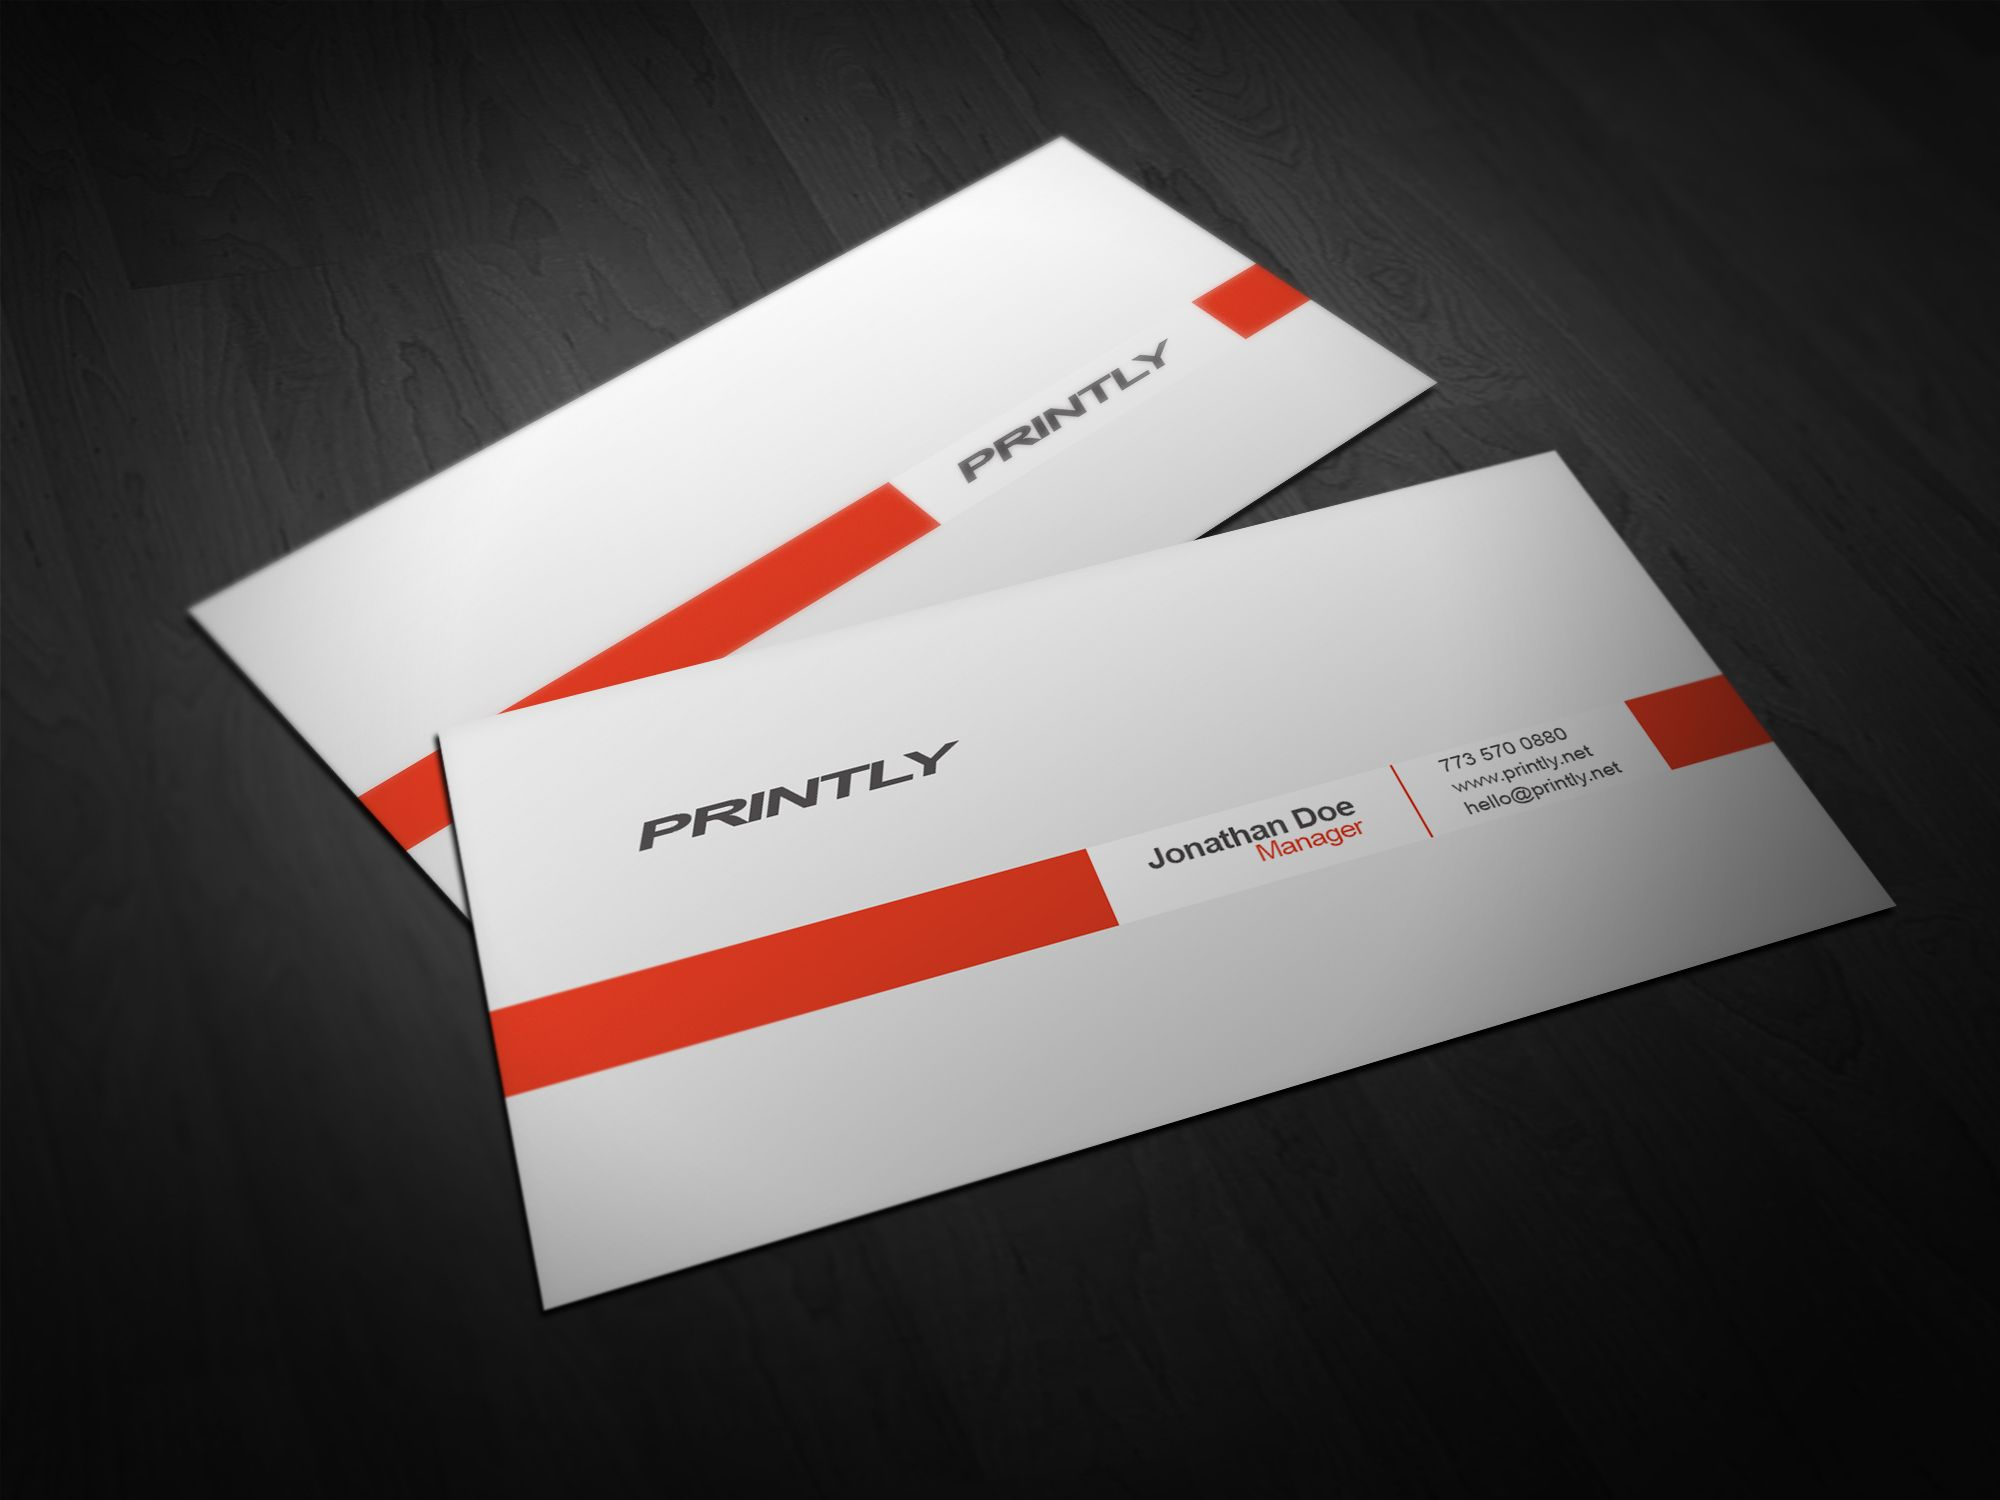 Free printly psd business card template printly design free printly psd business card template printly cheaphphosting Images